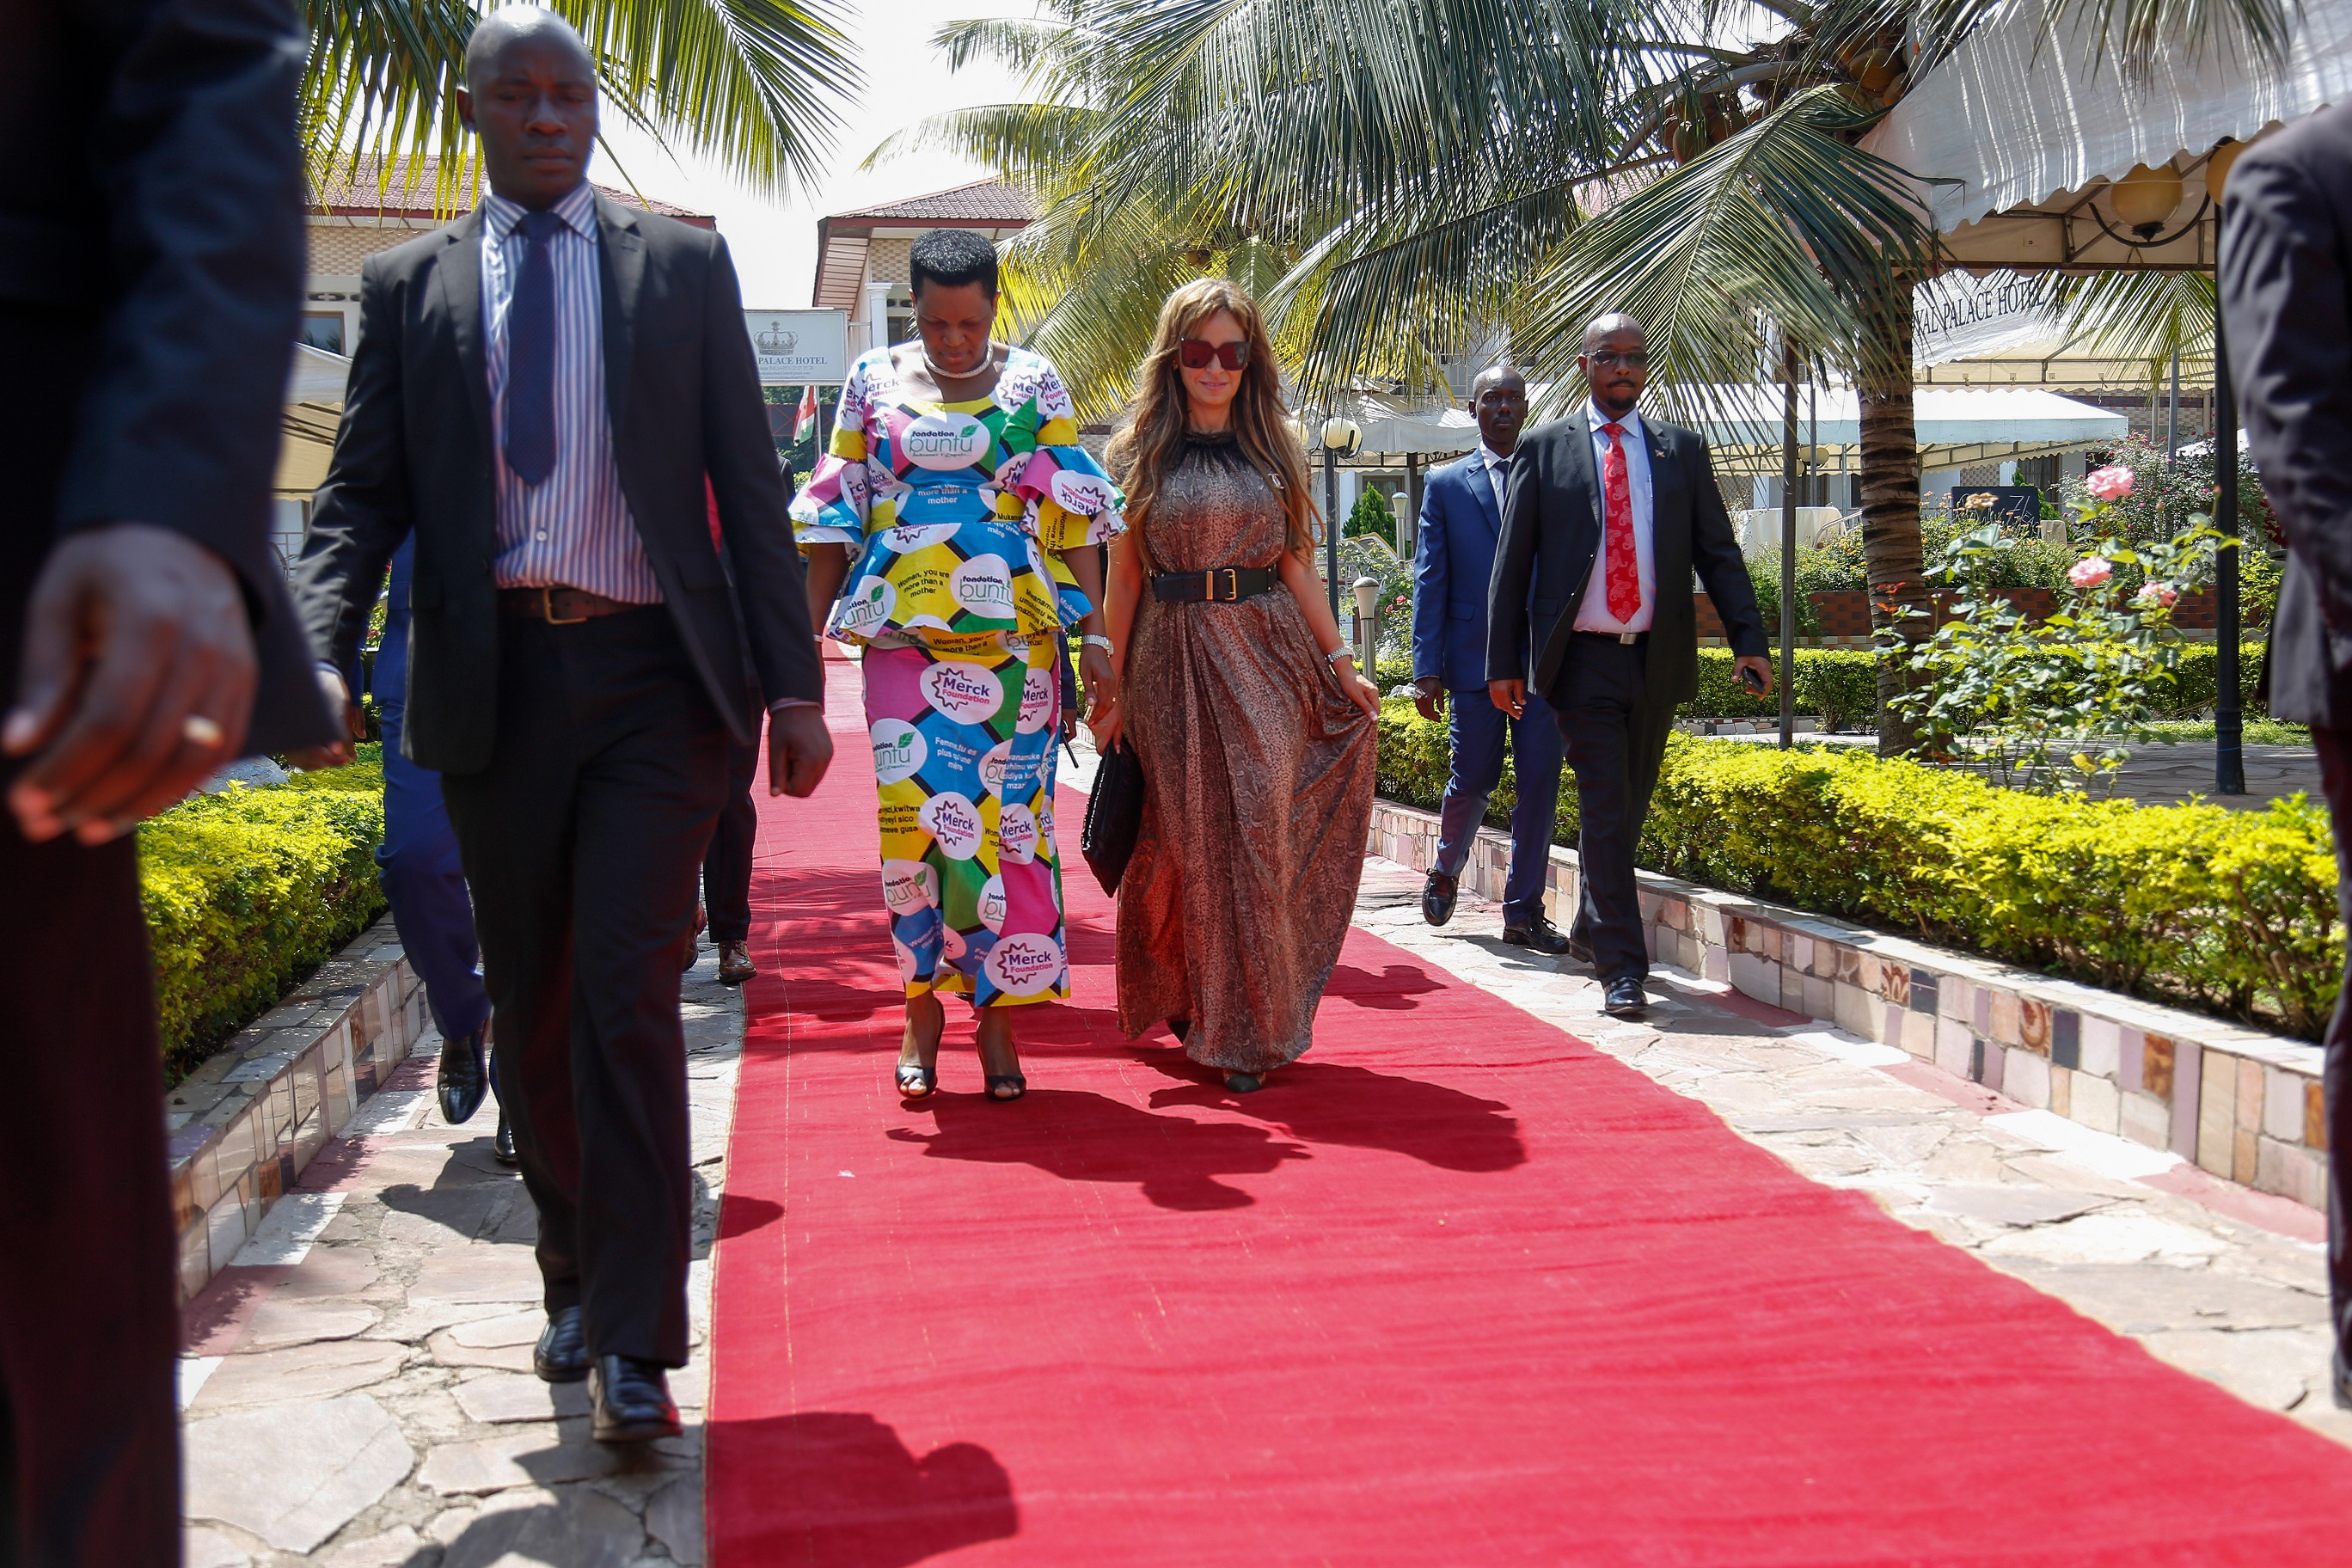 Dr. Rasha Kelej, CEO of Merck Foundation and President, Merck More Than a Mother with H.E. MADAM DENISE NKURUNZIZA, The First Lady of Burundi and Ambassador, Merck More Than a Mother arriving for the Health Media Training